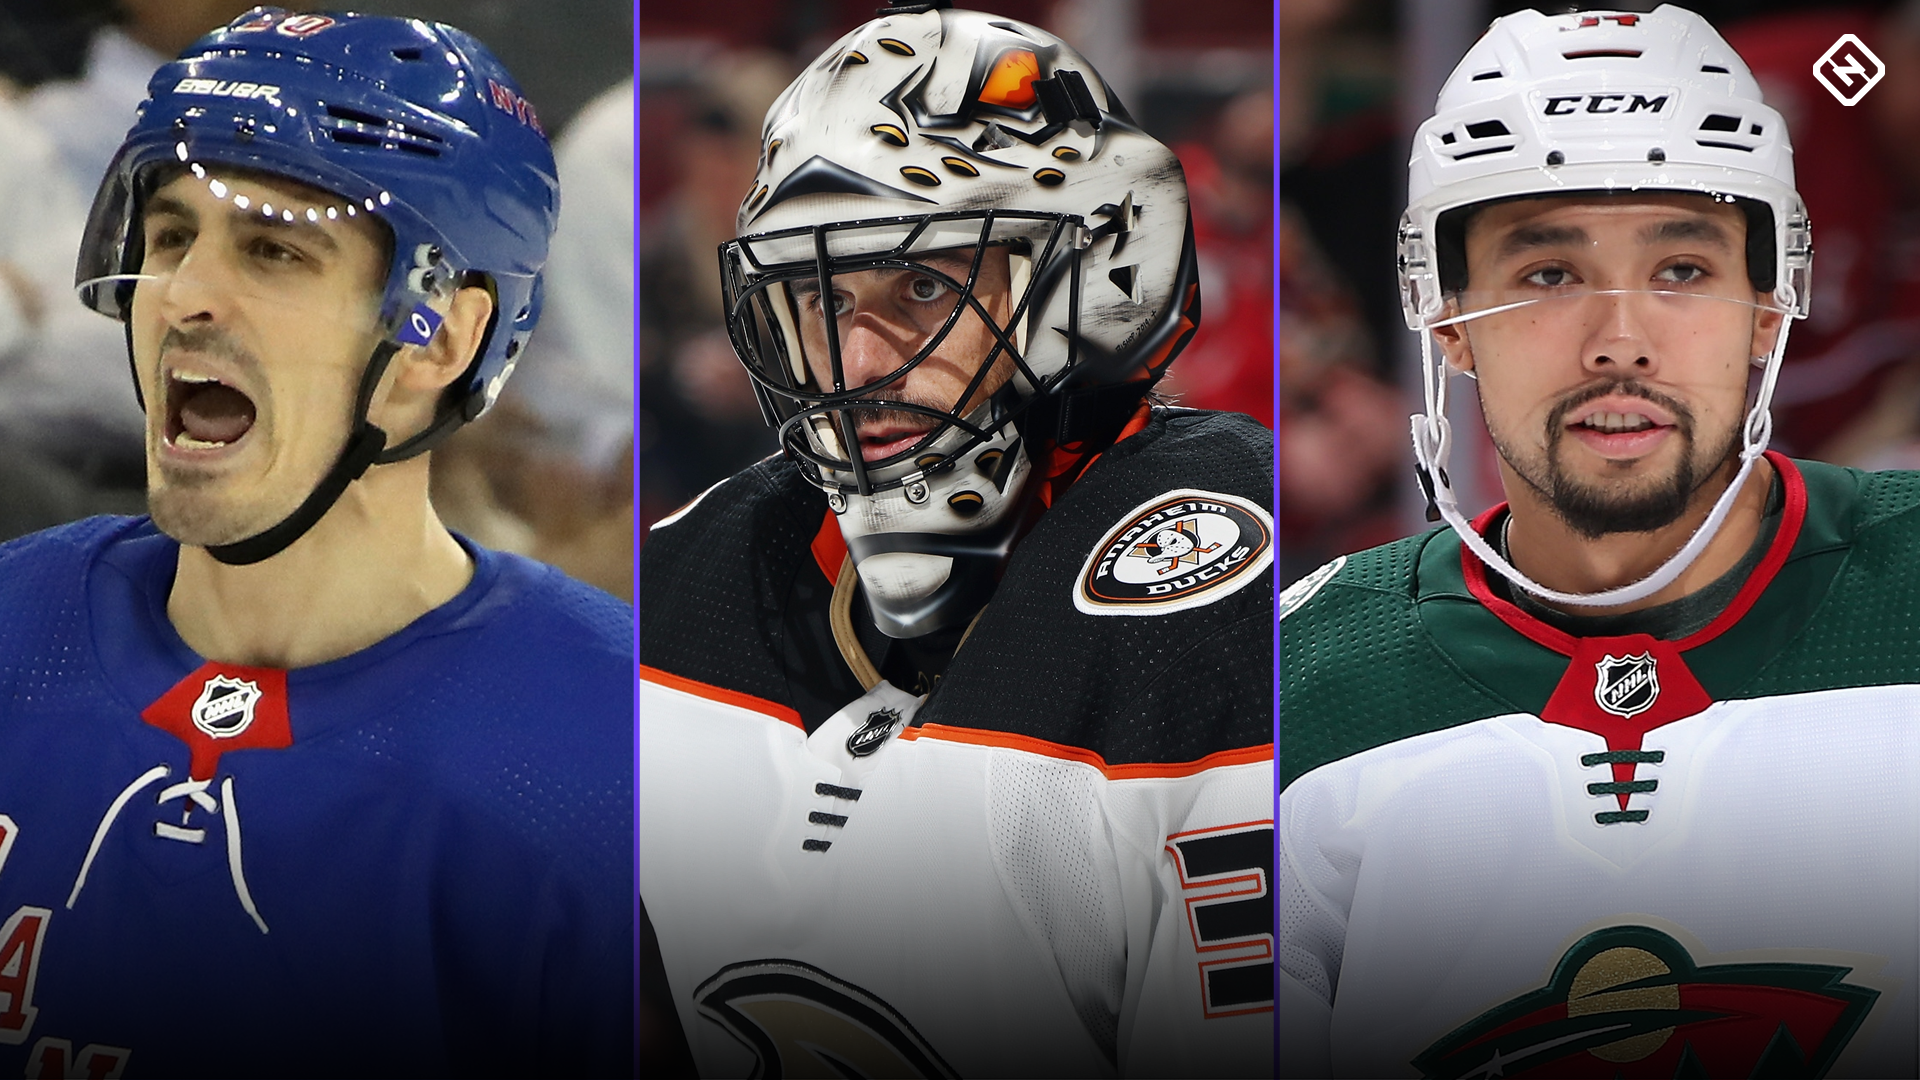 NHL trade deadline 2020: Top candidates to be moved, by position